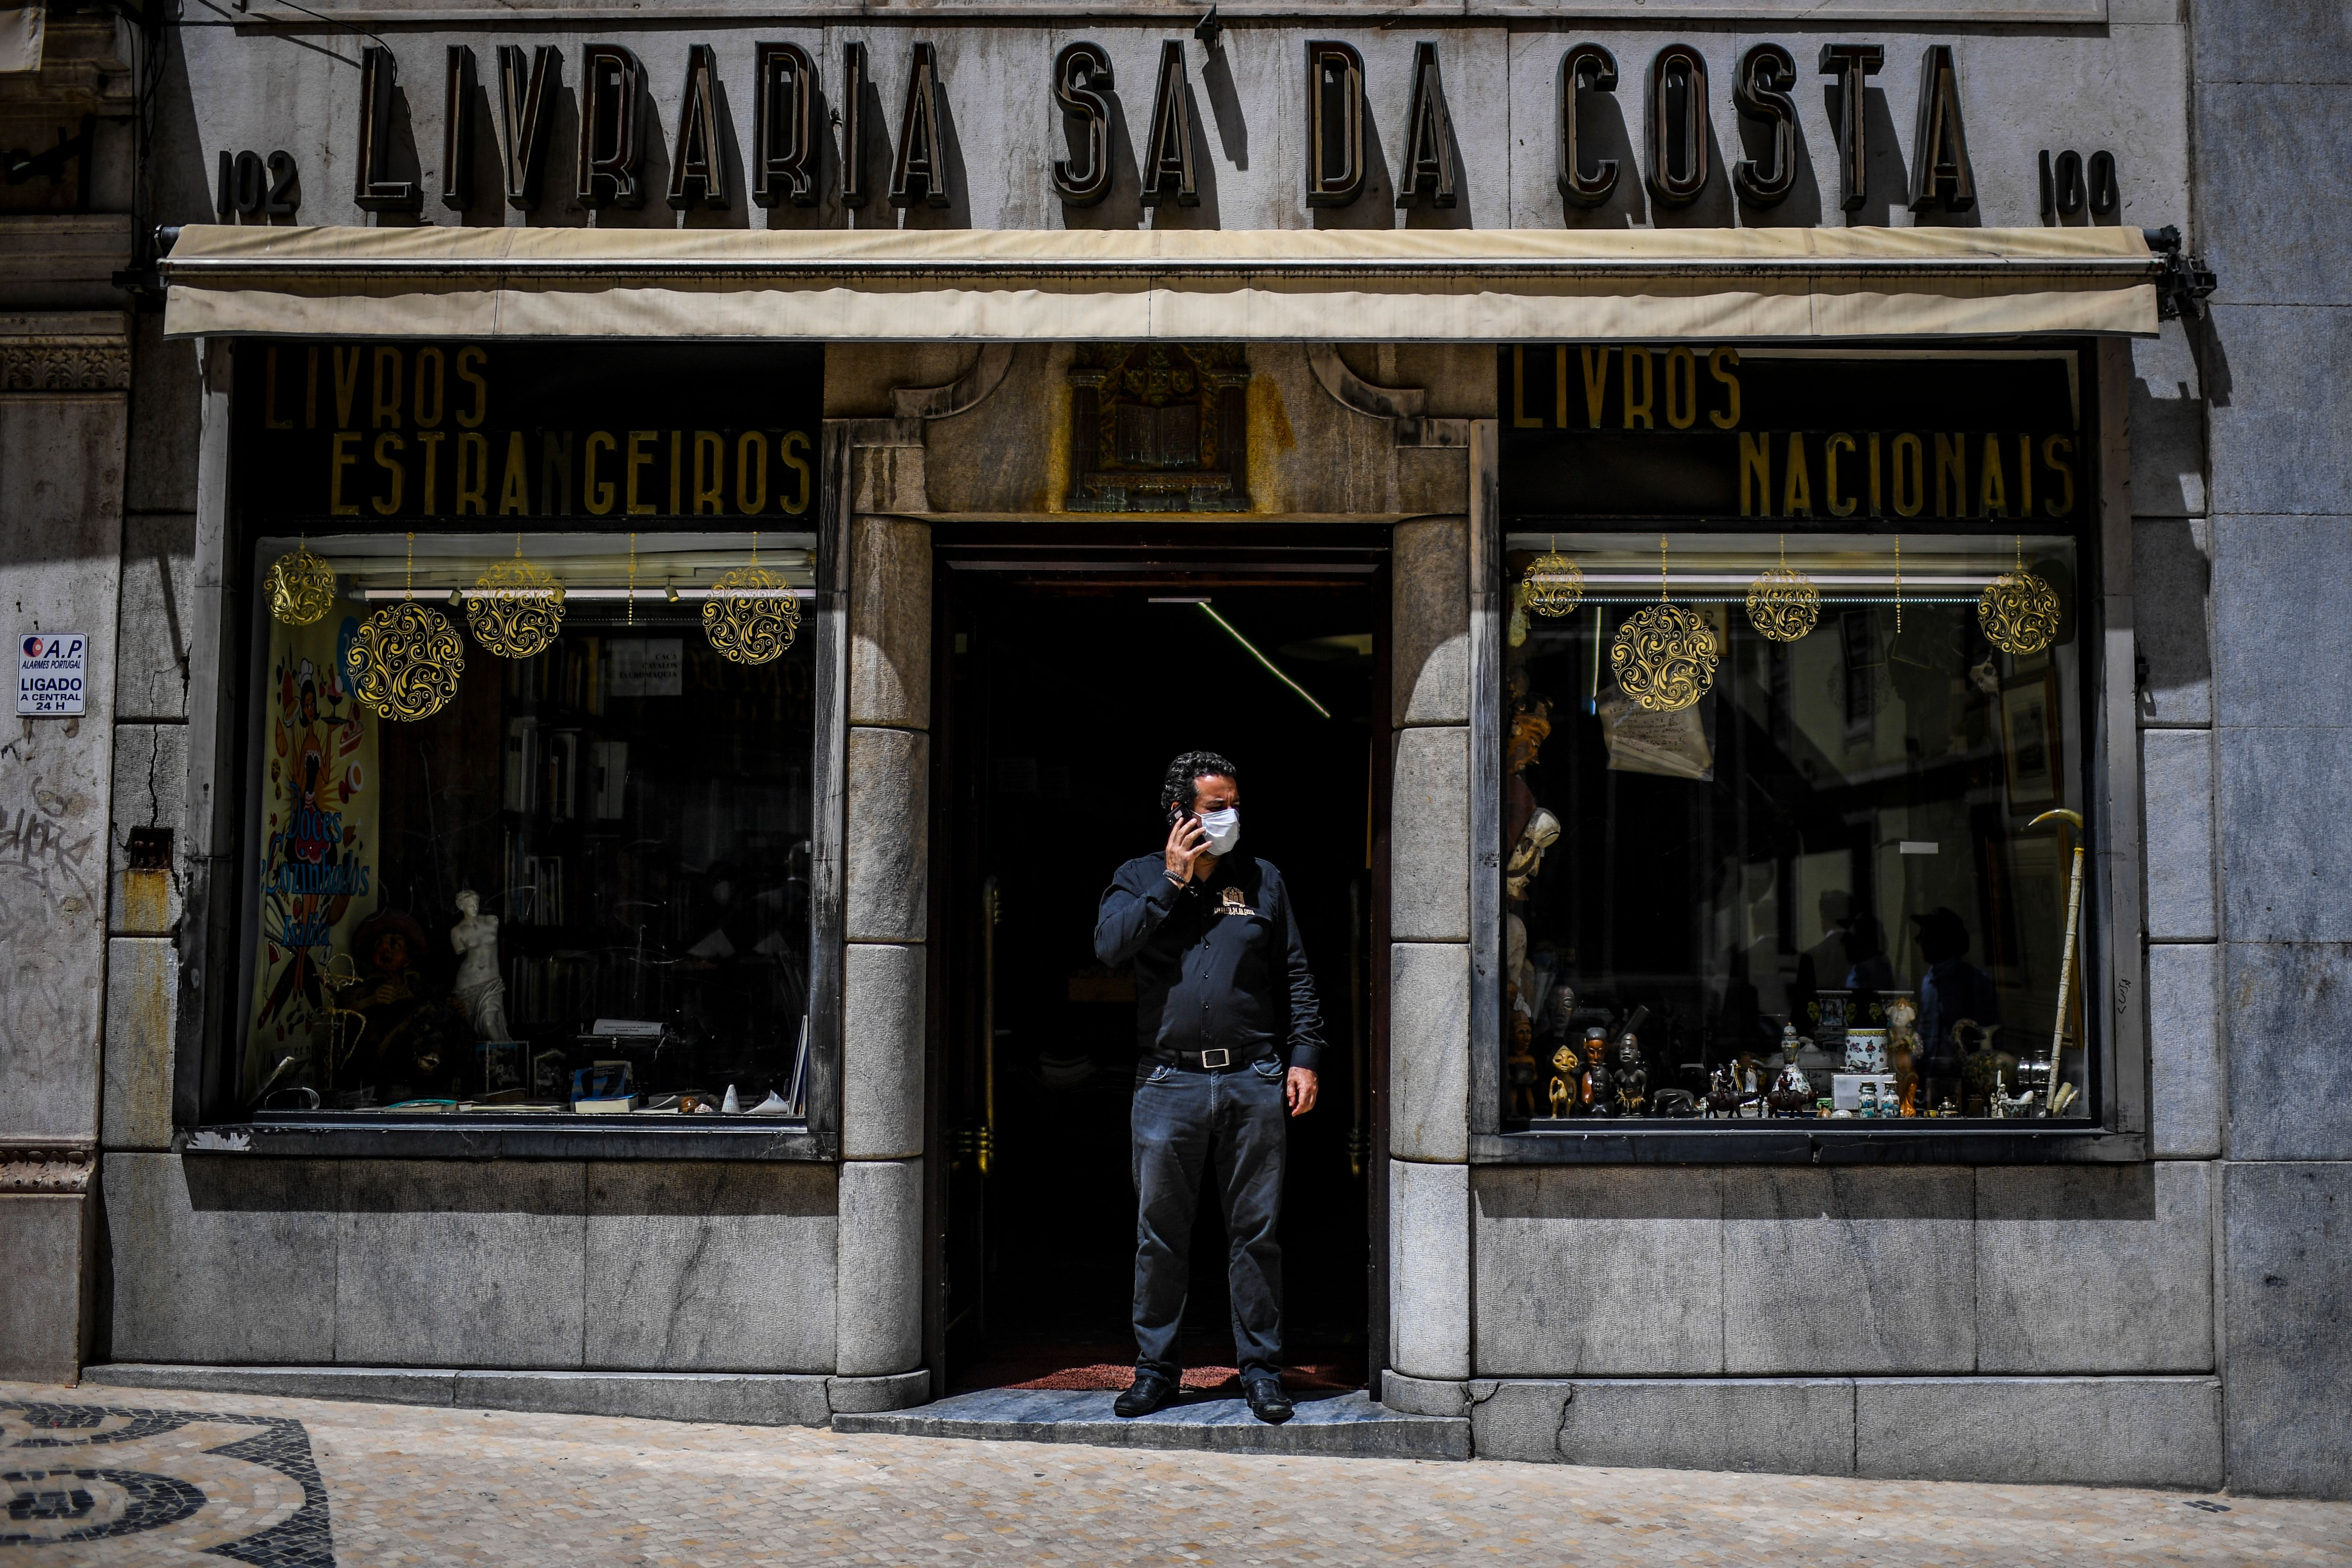 A man speaks on the phone in front of his bookshop in Lisbon on May 4, 2020 as millions of Europeans emerged with relief from coronavirus confinement. - Portugal allowed small shops, hair salons and car dealers to resume business, but ordered face masks to be worn in stores and on public transport. (Photo by PATRICIA DE MELO MOREIRA / AFP) (Photo by PATRICIA DE MELO MOREIRA/AFP via Getty Images)